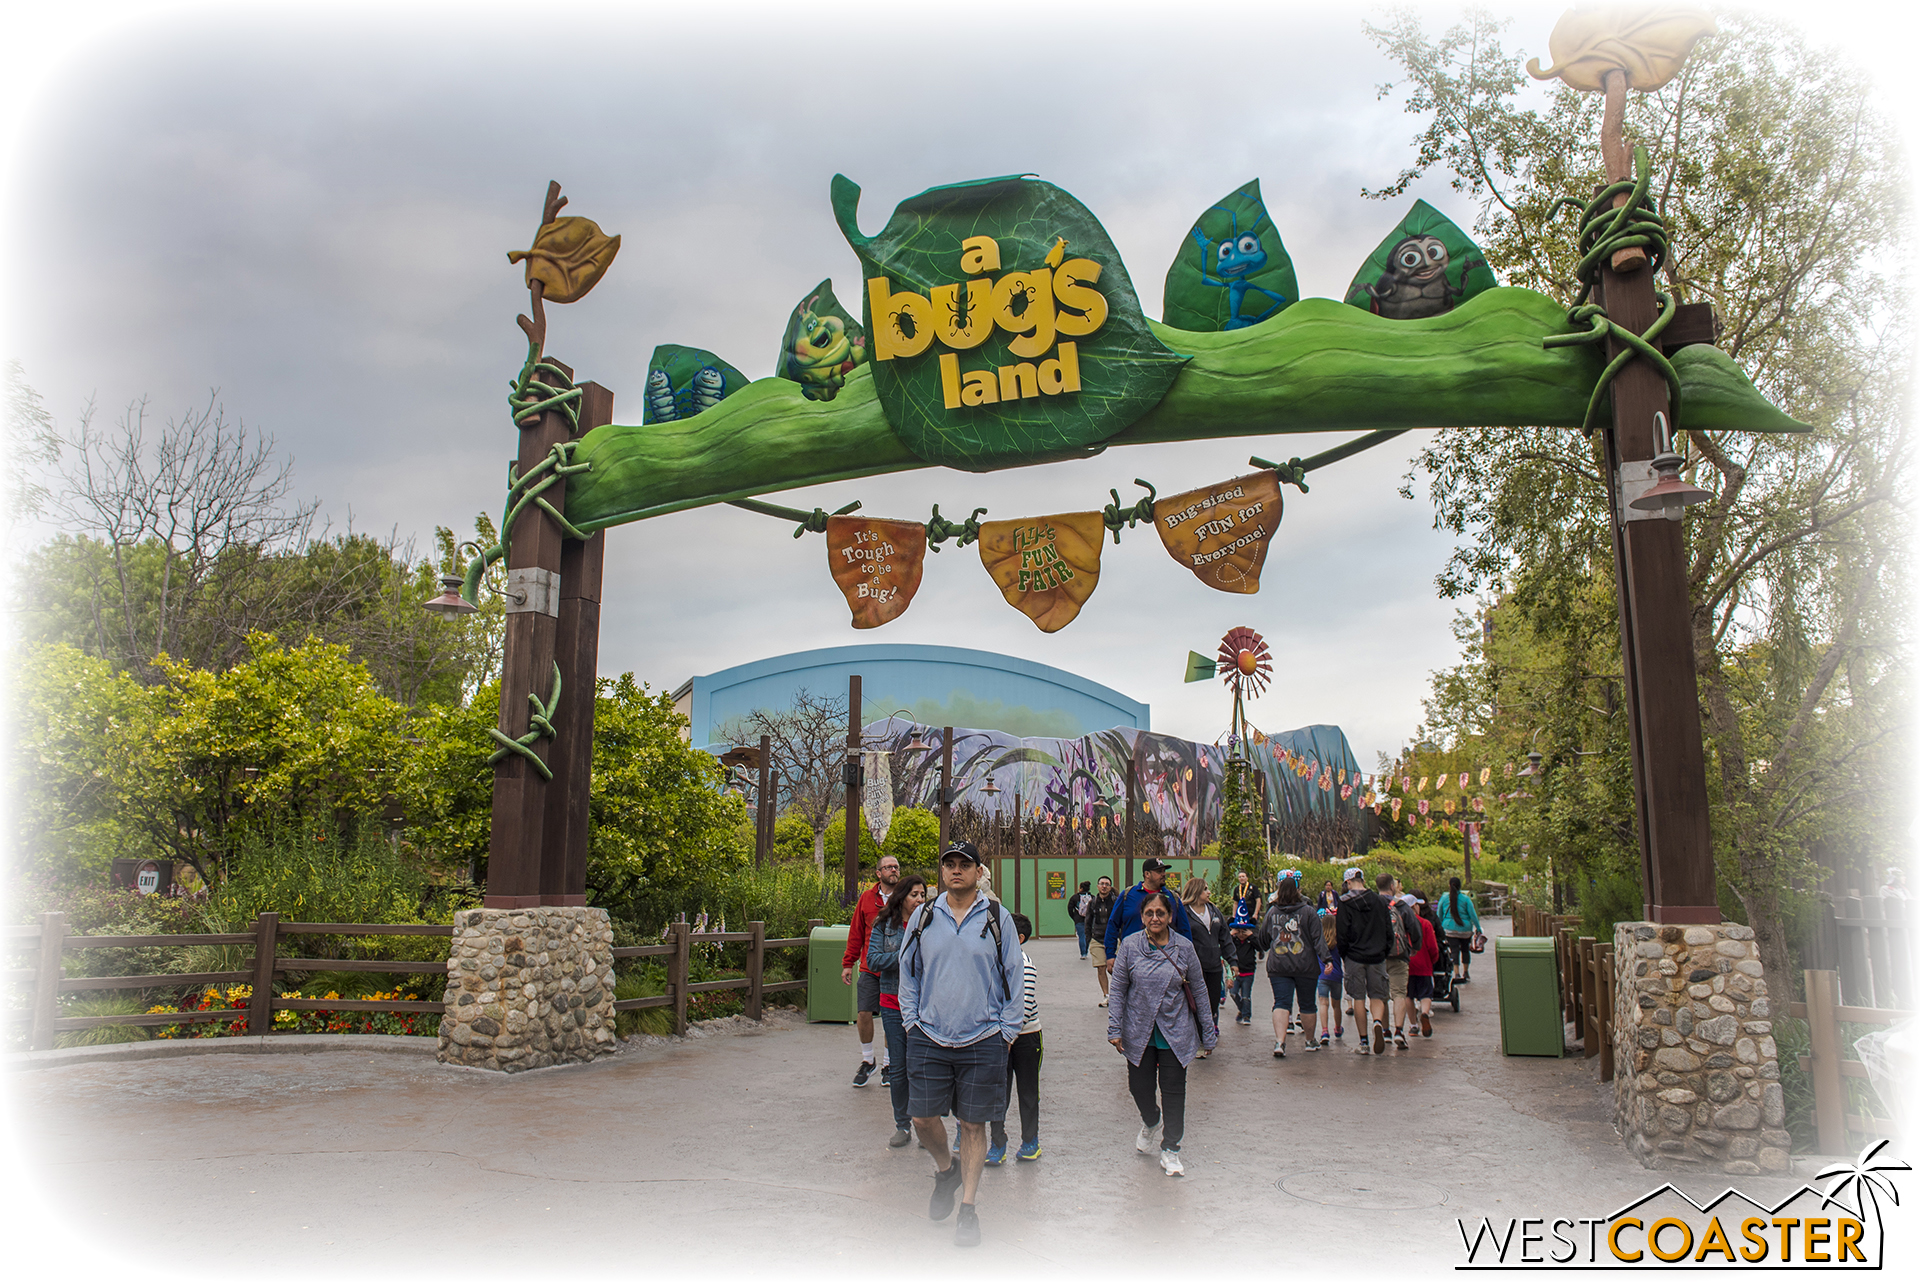 Oh, A Bug's Land... that rushed add-on that they had to throw in when they realized there really wasn't much to do at DCA when it first opened...